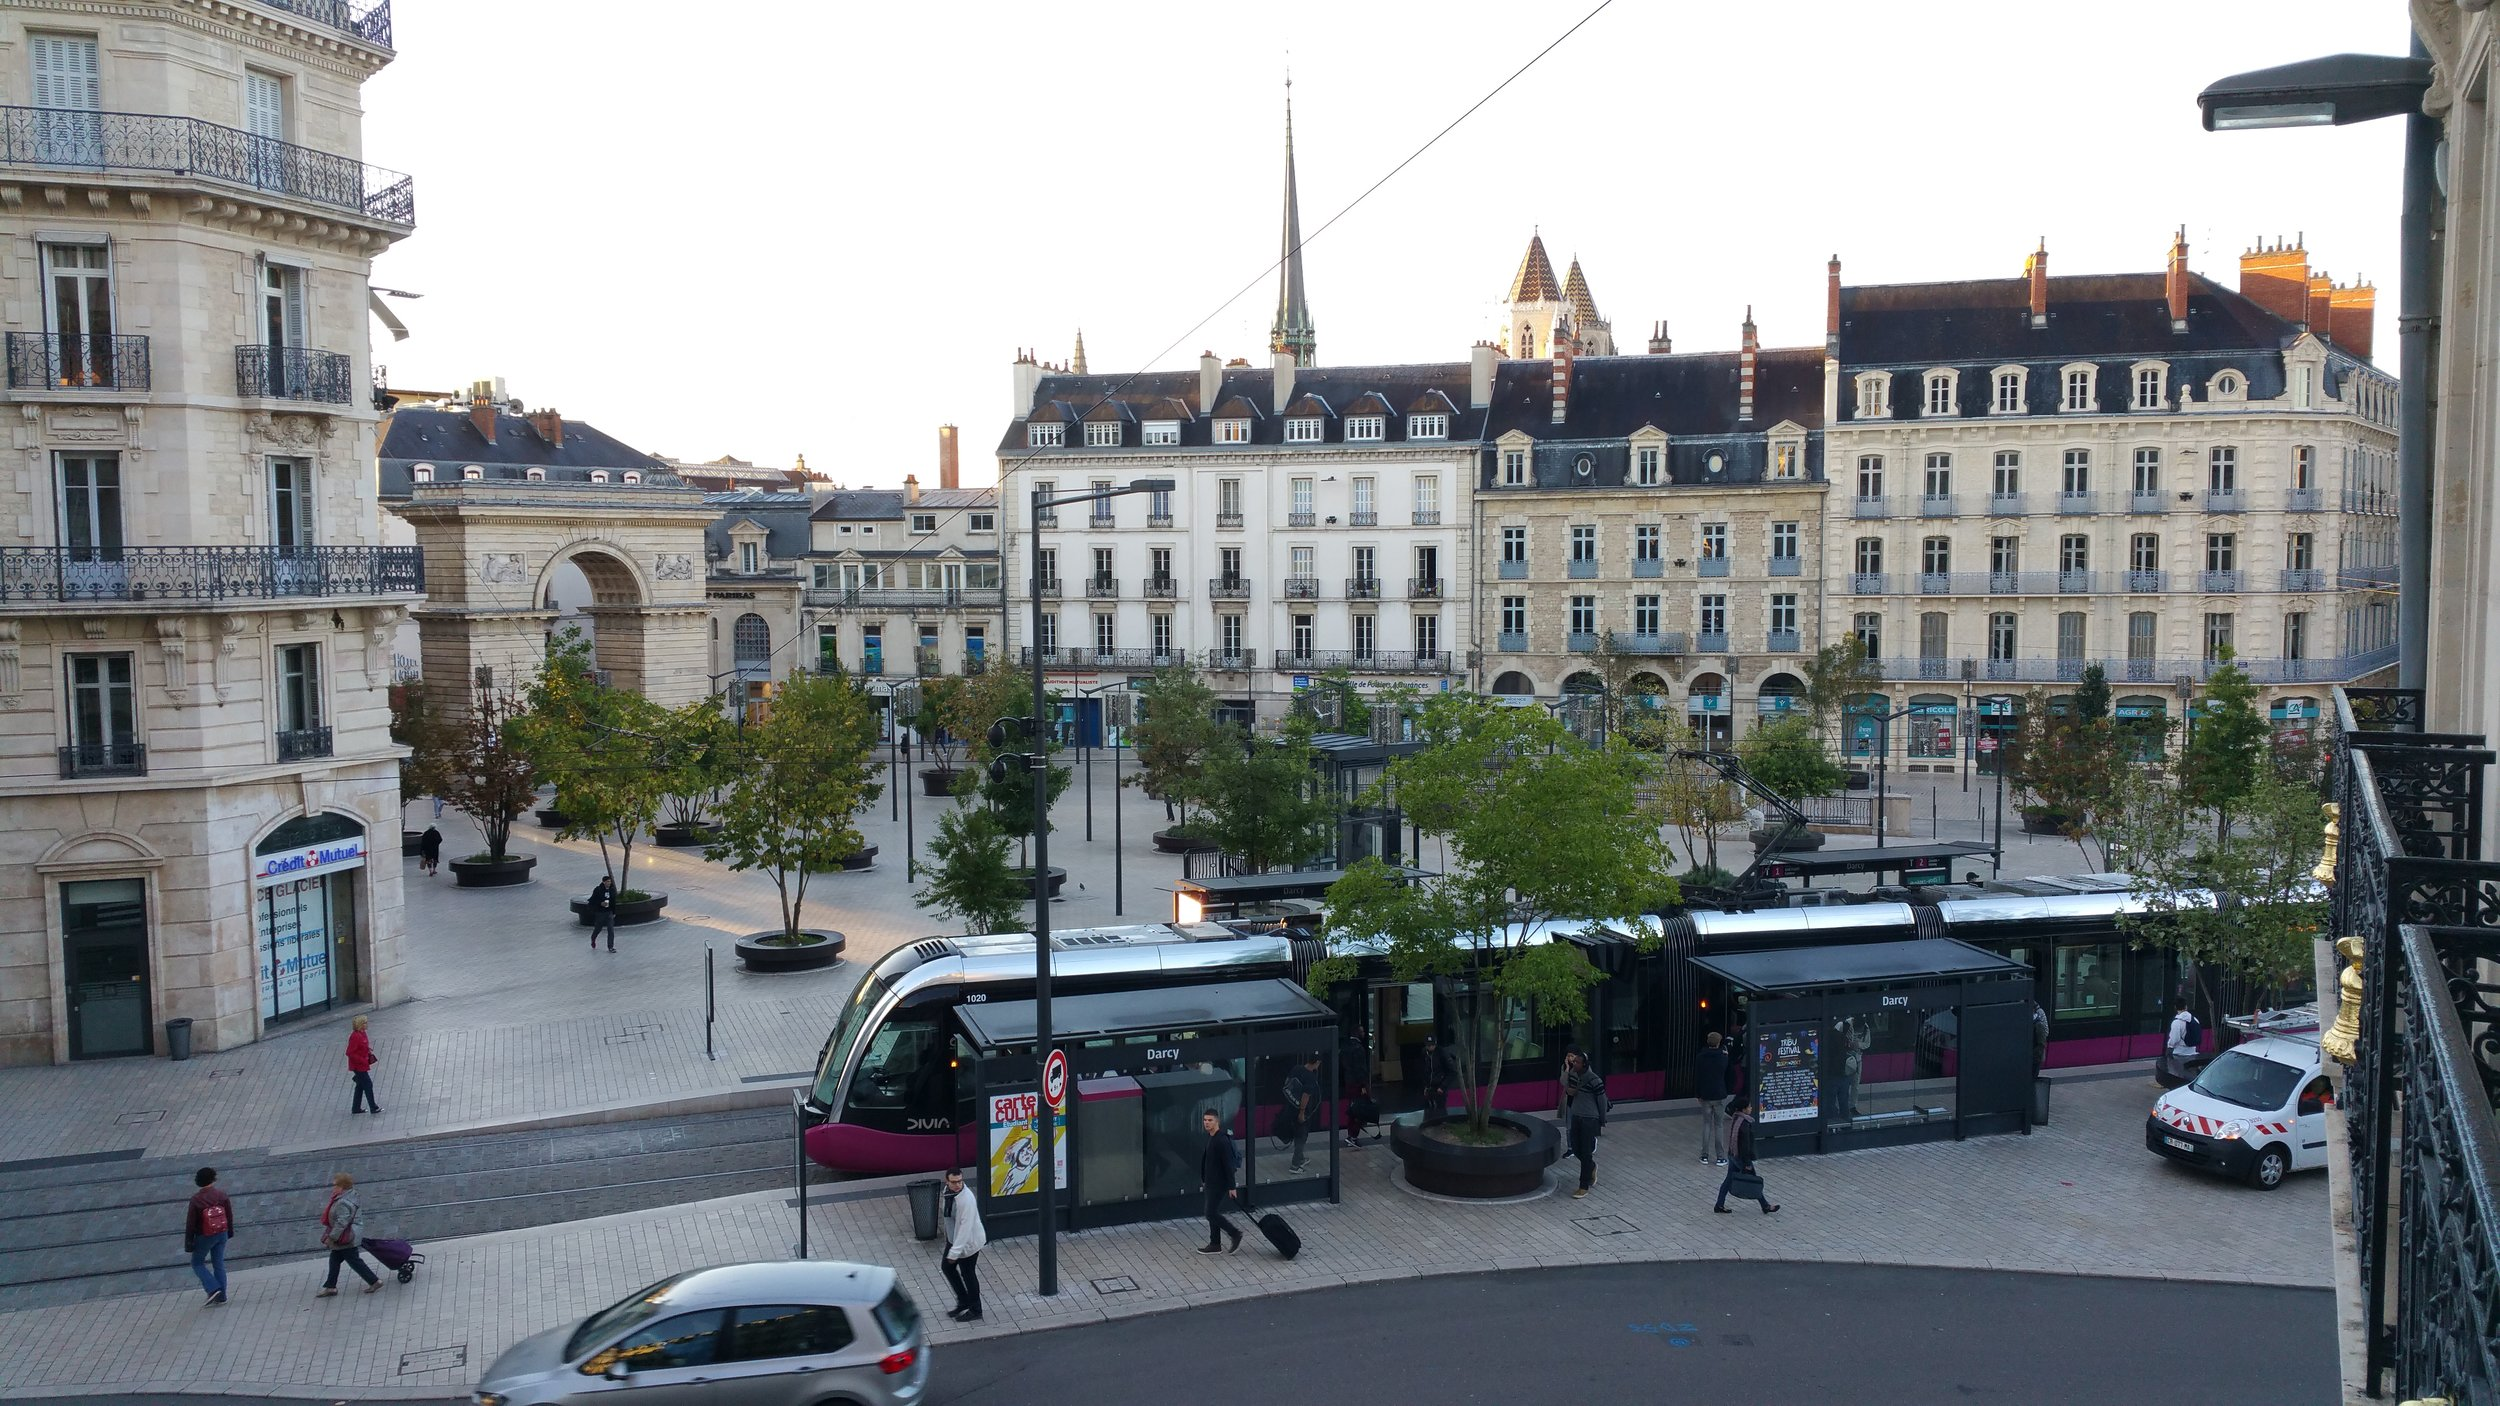 The view from our hotel room in Dijon